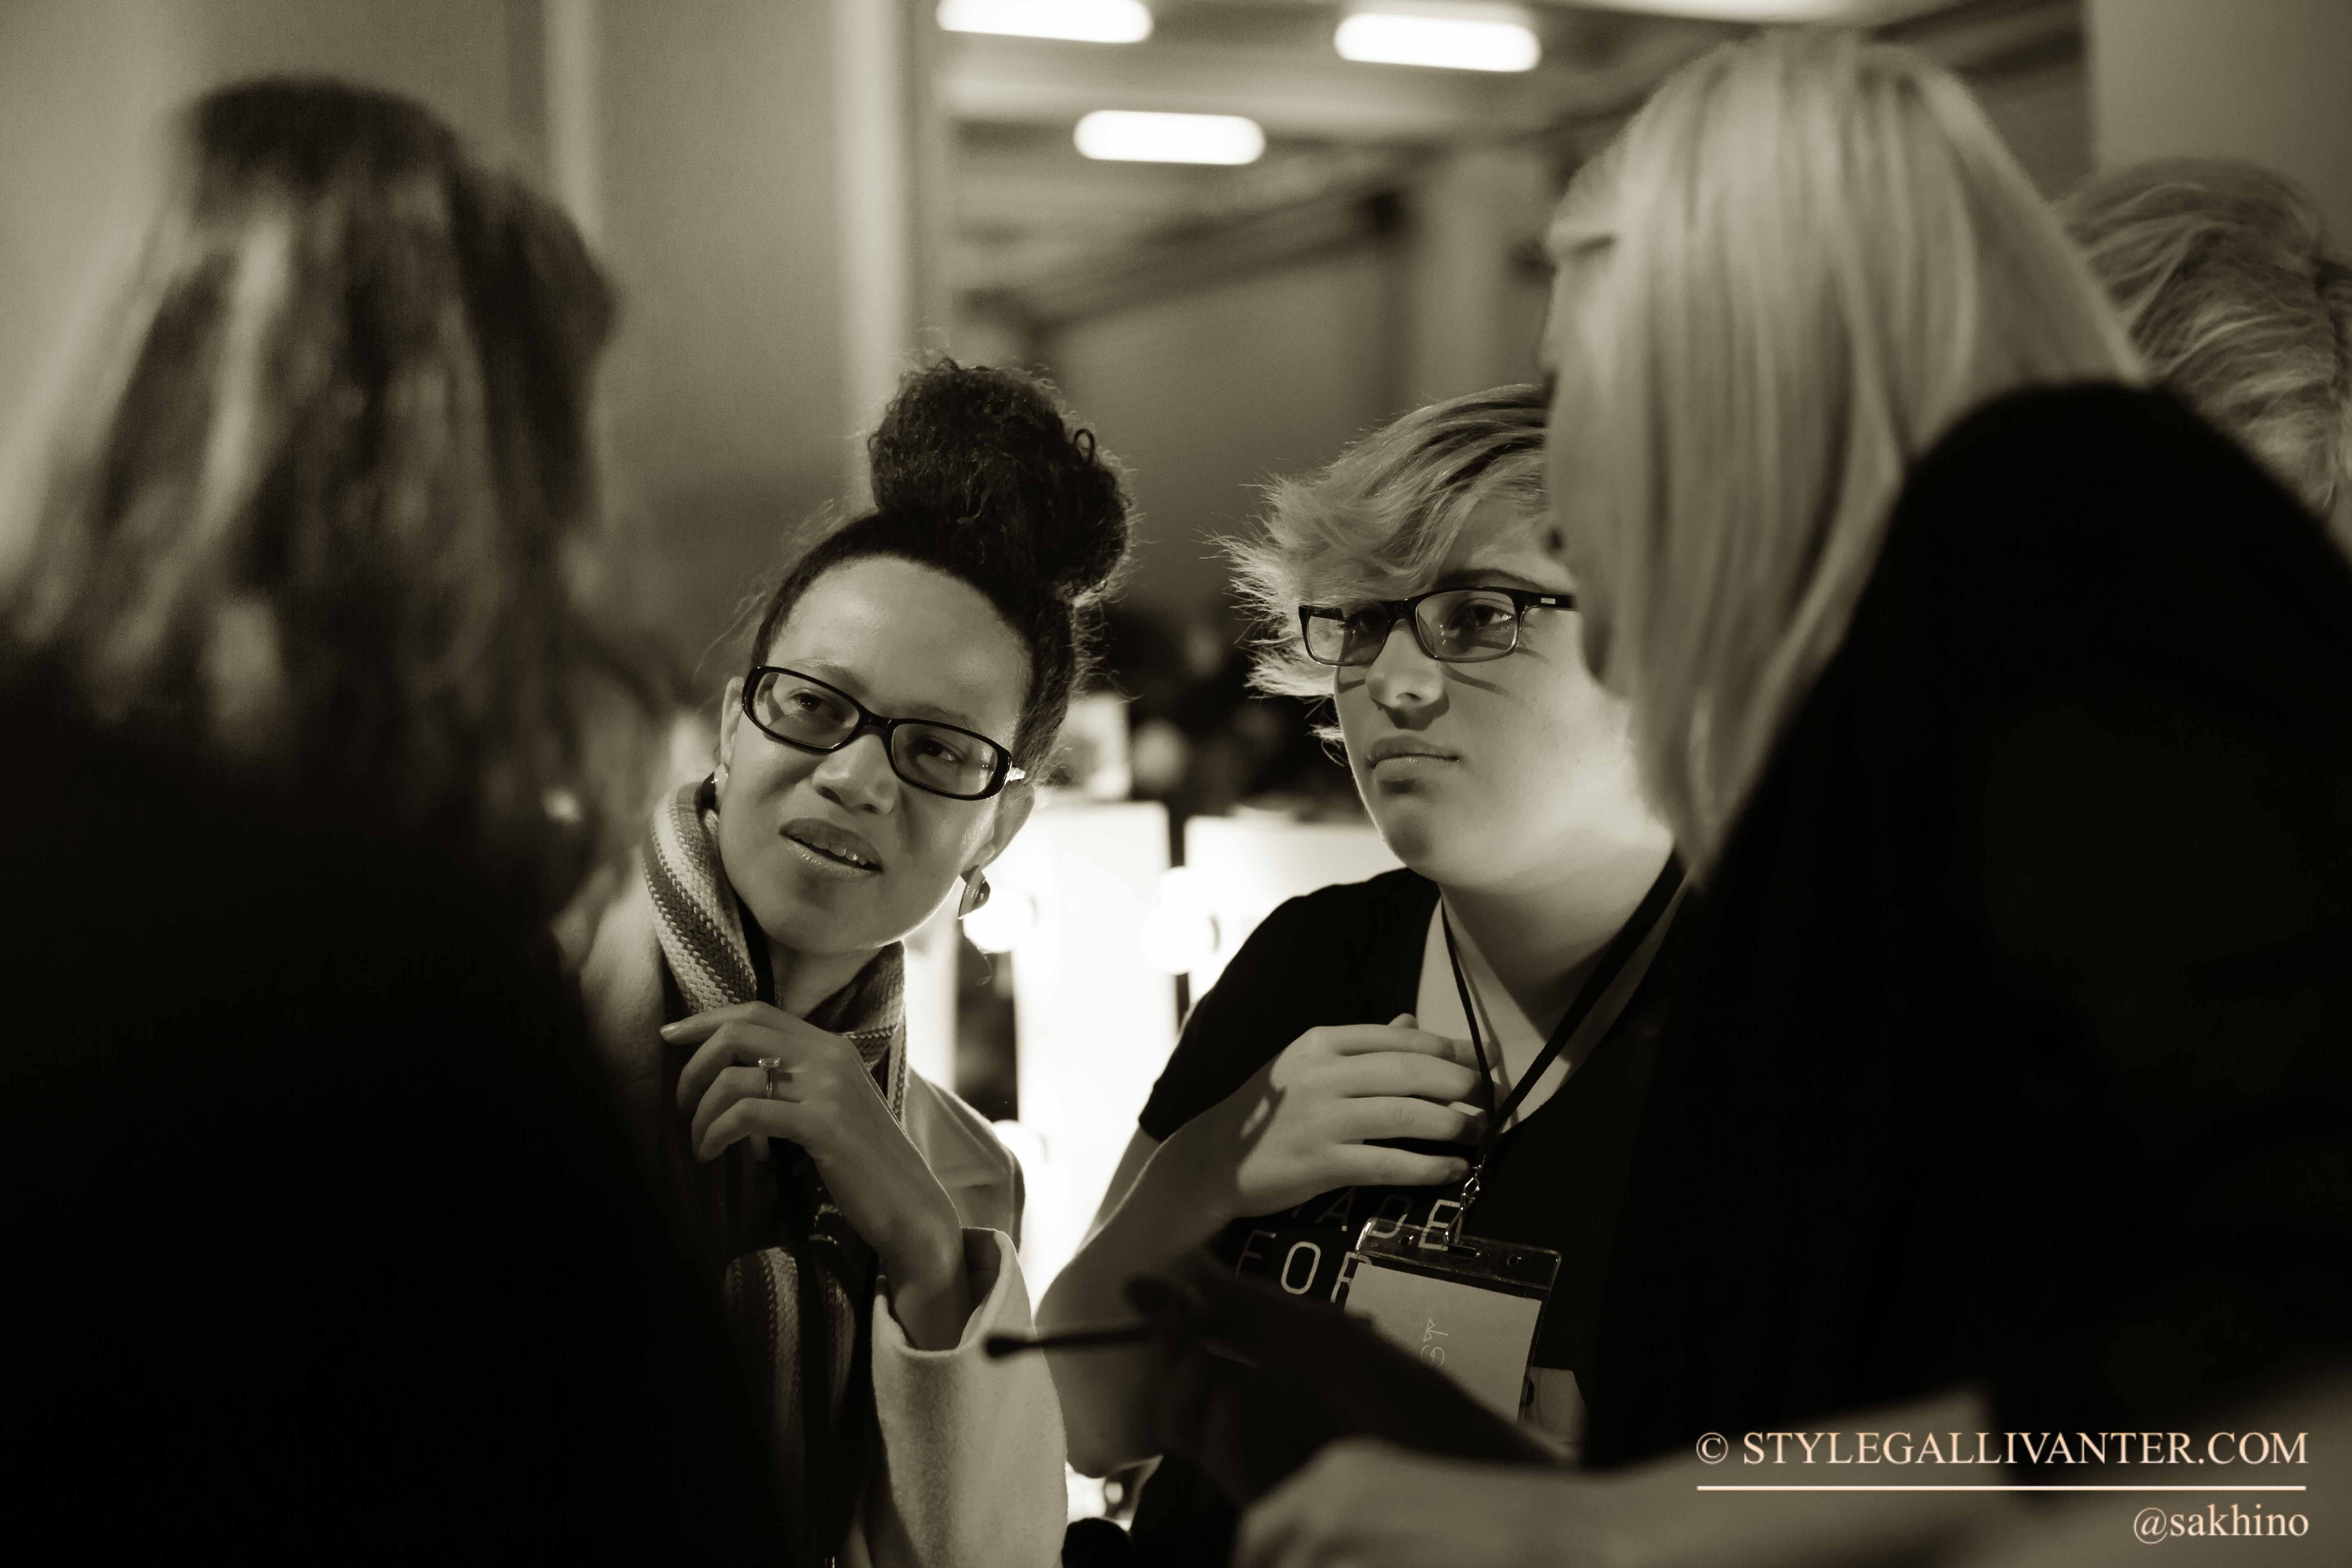 stylegallivanter.com-copyright-2015_not-to-be-used-without-permission_fashfest-2015-audi_fashfest-2015-backstage